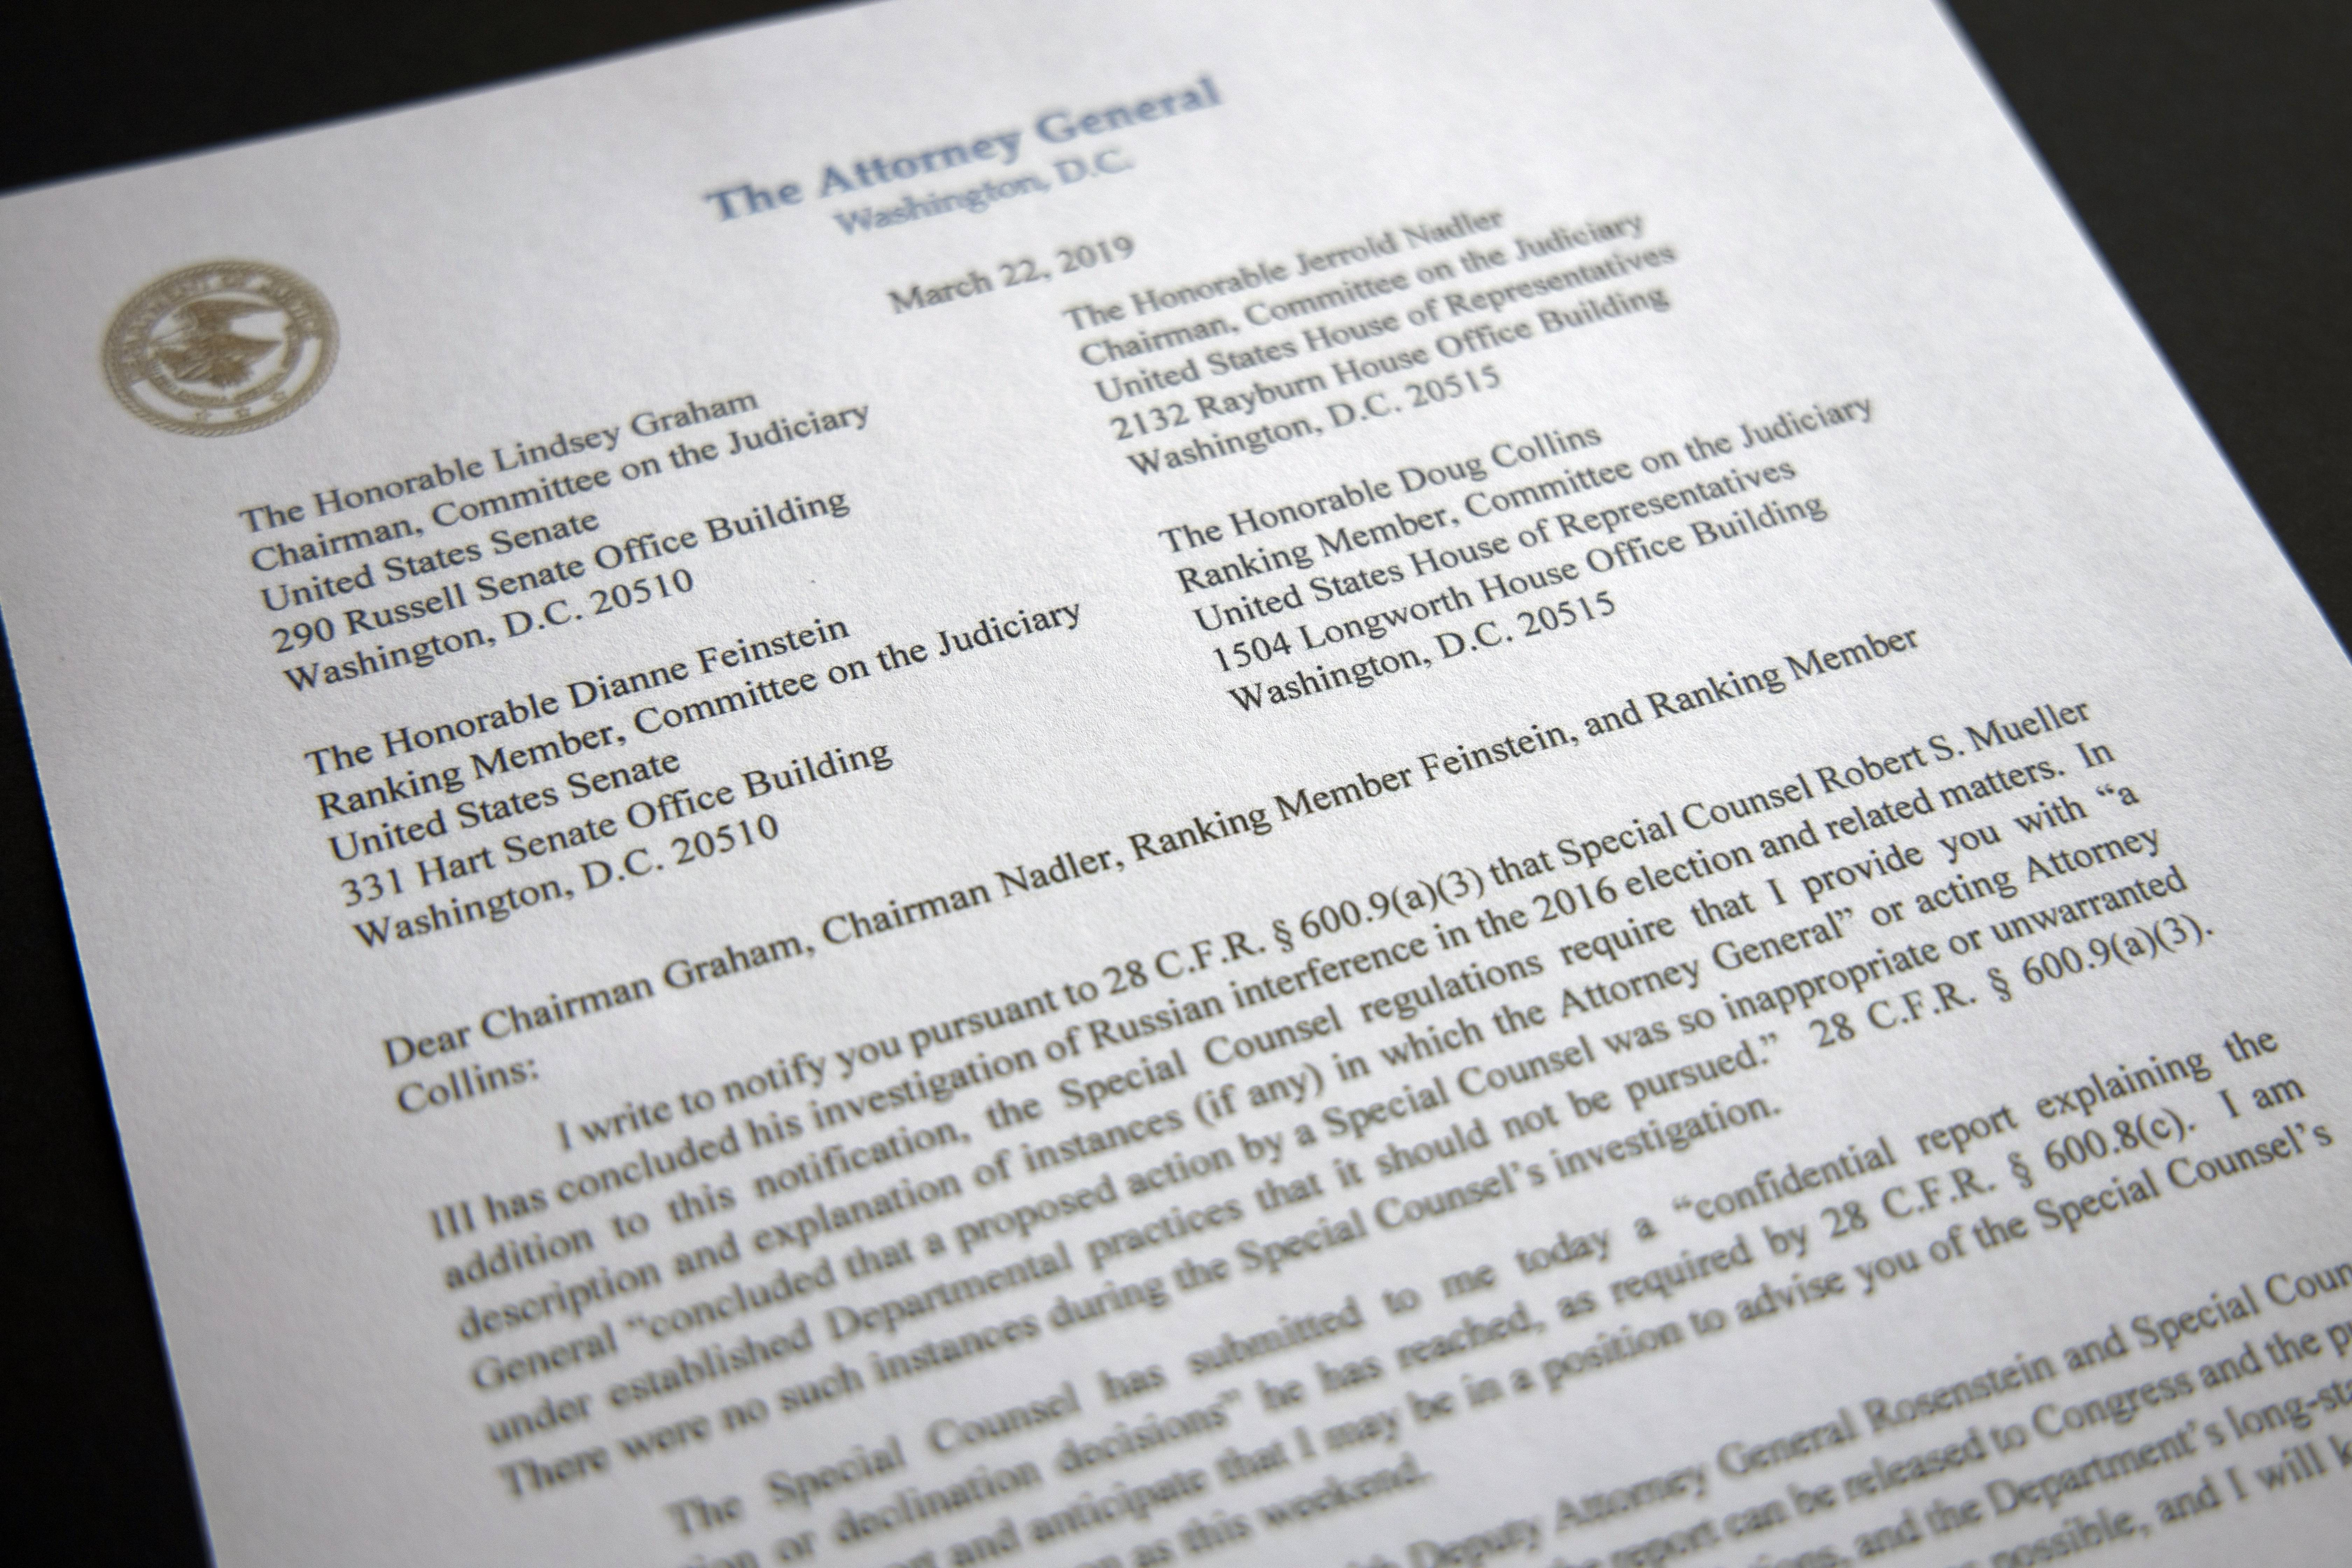 A copy of a letter from Attorney General William Barr advising Congress that Special Counsel Robert Mueller has concluded his investigation, is shown Friday, March 22, 2019 in Washington. Robert Mueller on Friday turned over his long-awaited final report on the contentious Russia investigation that has cast a dark shadow over Donald Trump's presidency, entangled Trump's family and resulted in criminal charges against some of the president's closest associates. (AP Photo/Jon Elswick)